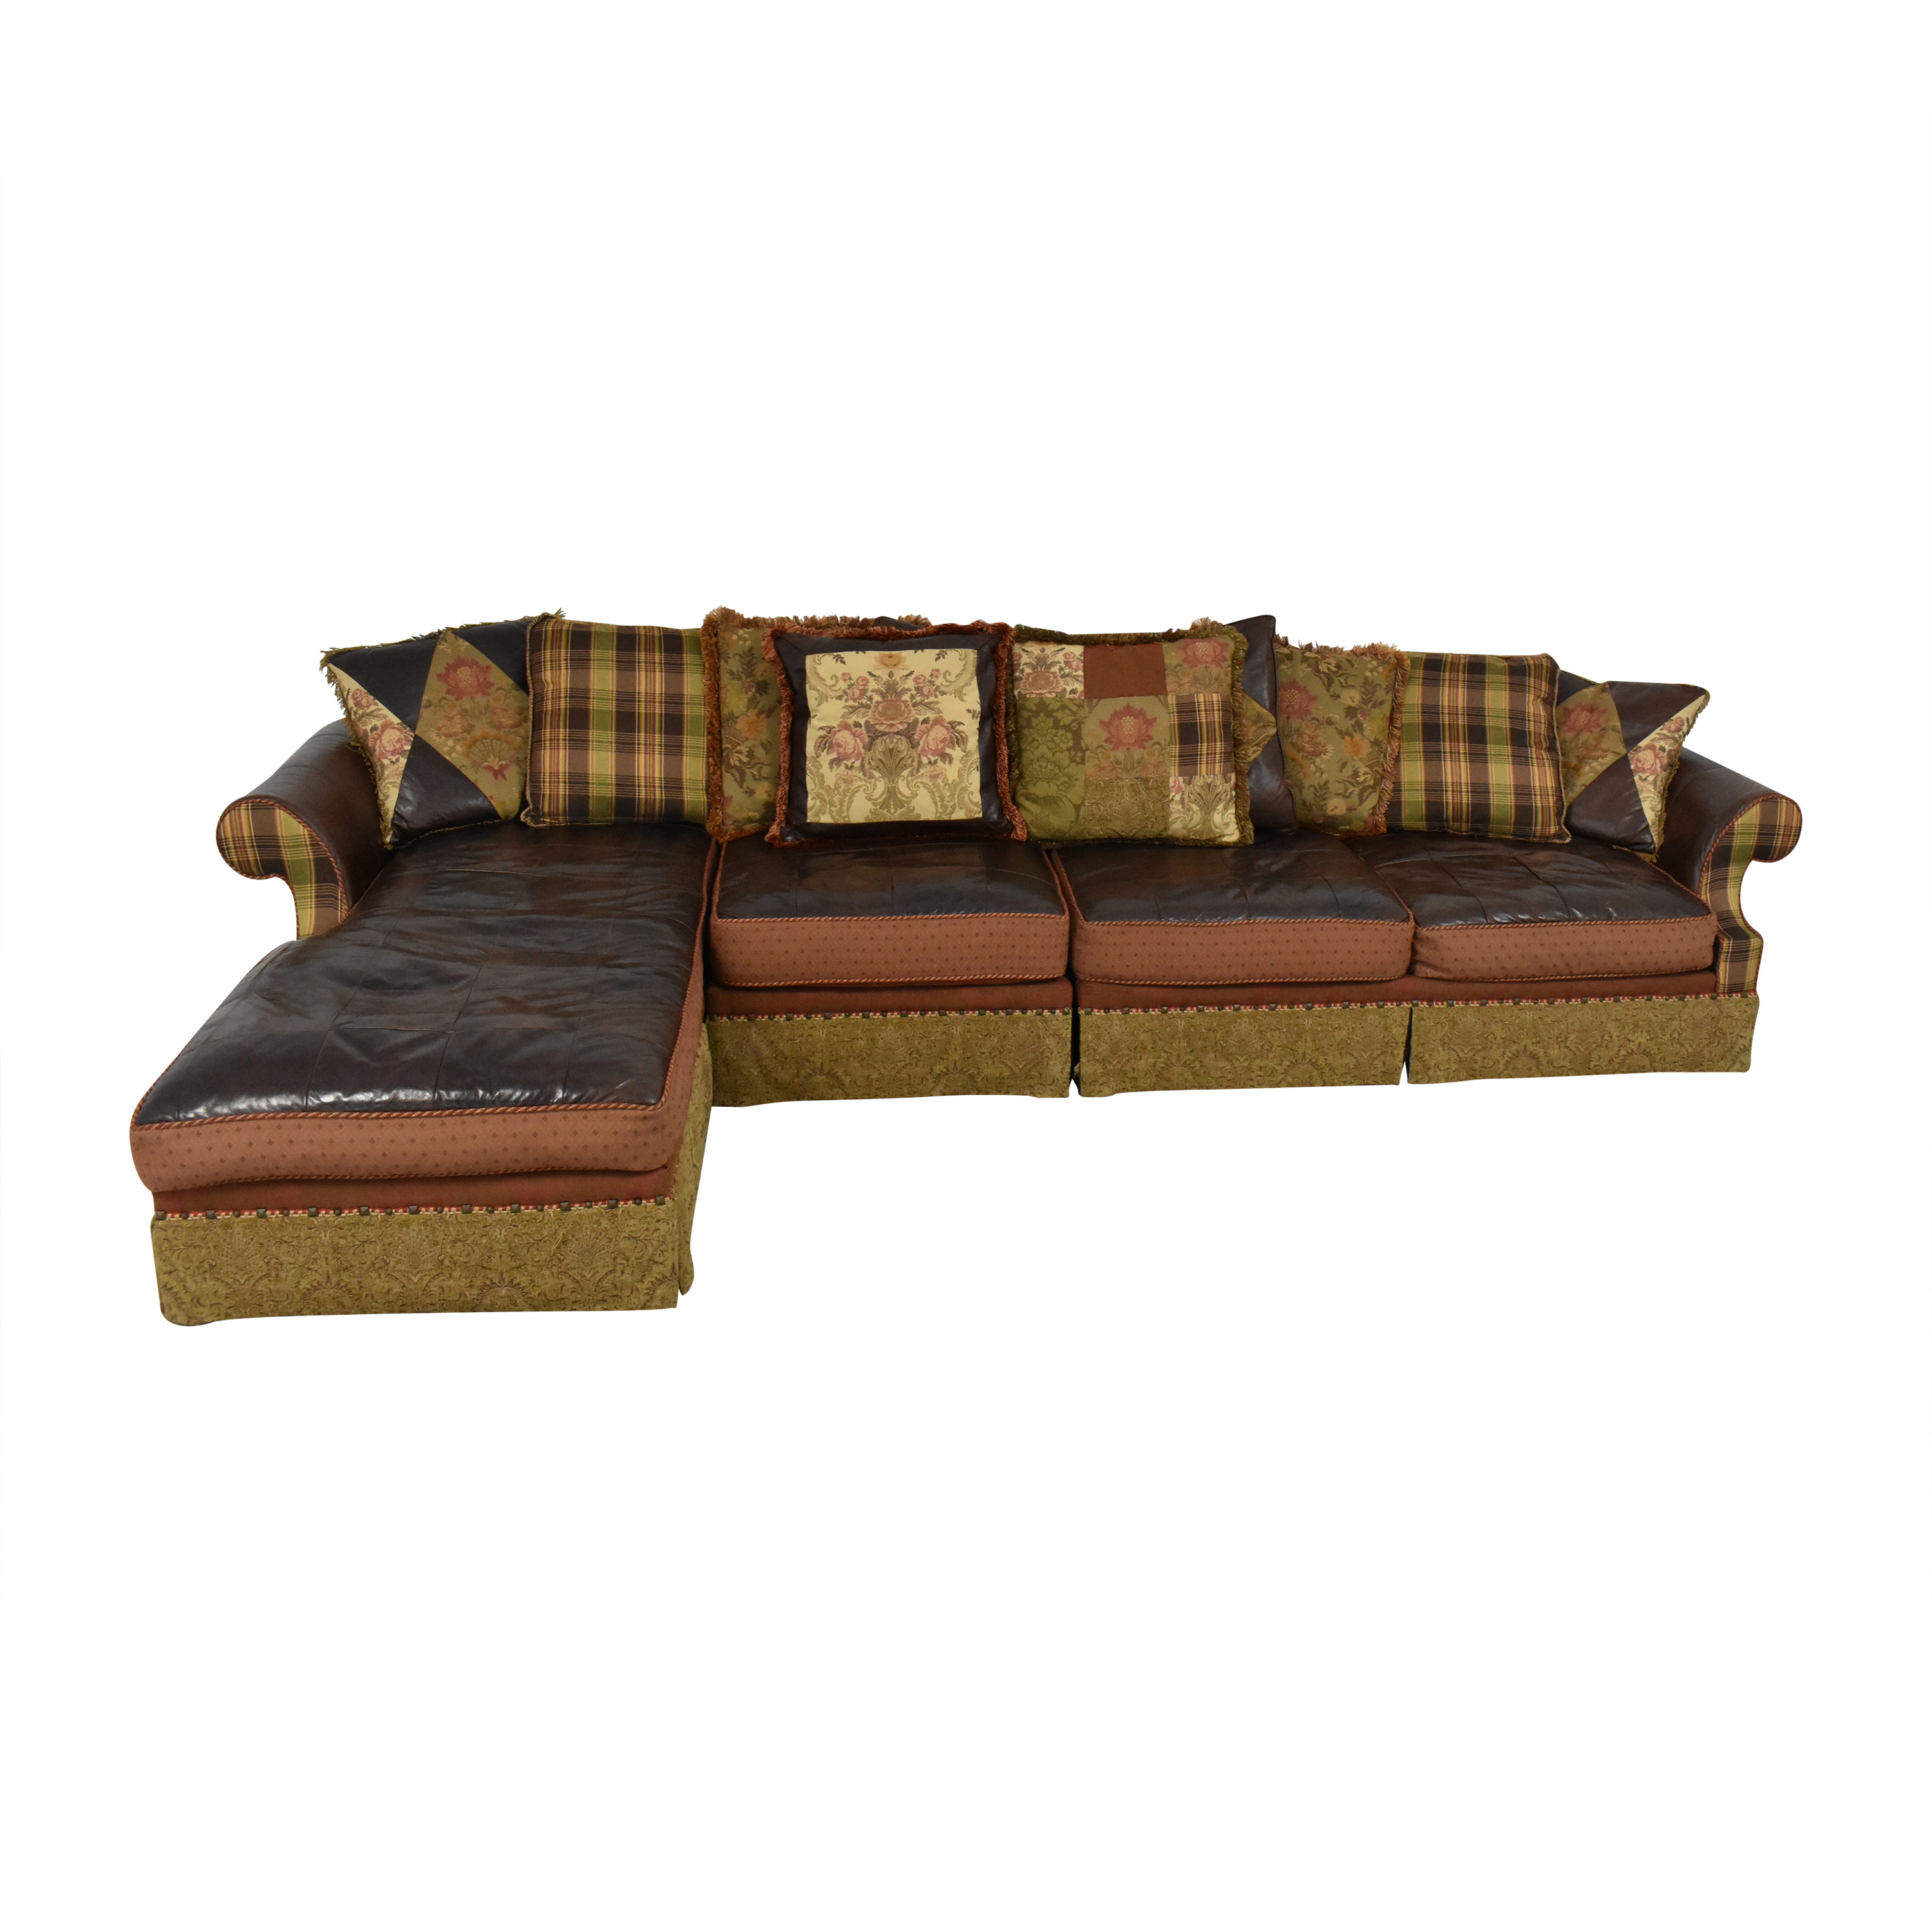 buy Key City Jeff Zimmerman Collection Mixed Media Sectional Key City Furniture Sectionals